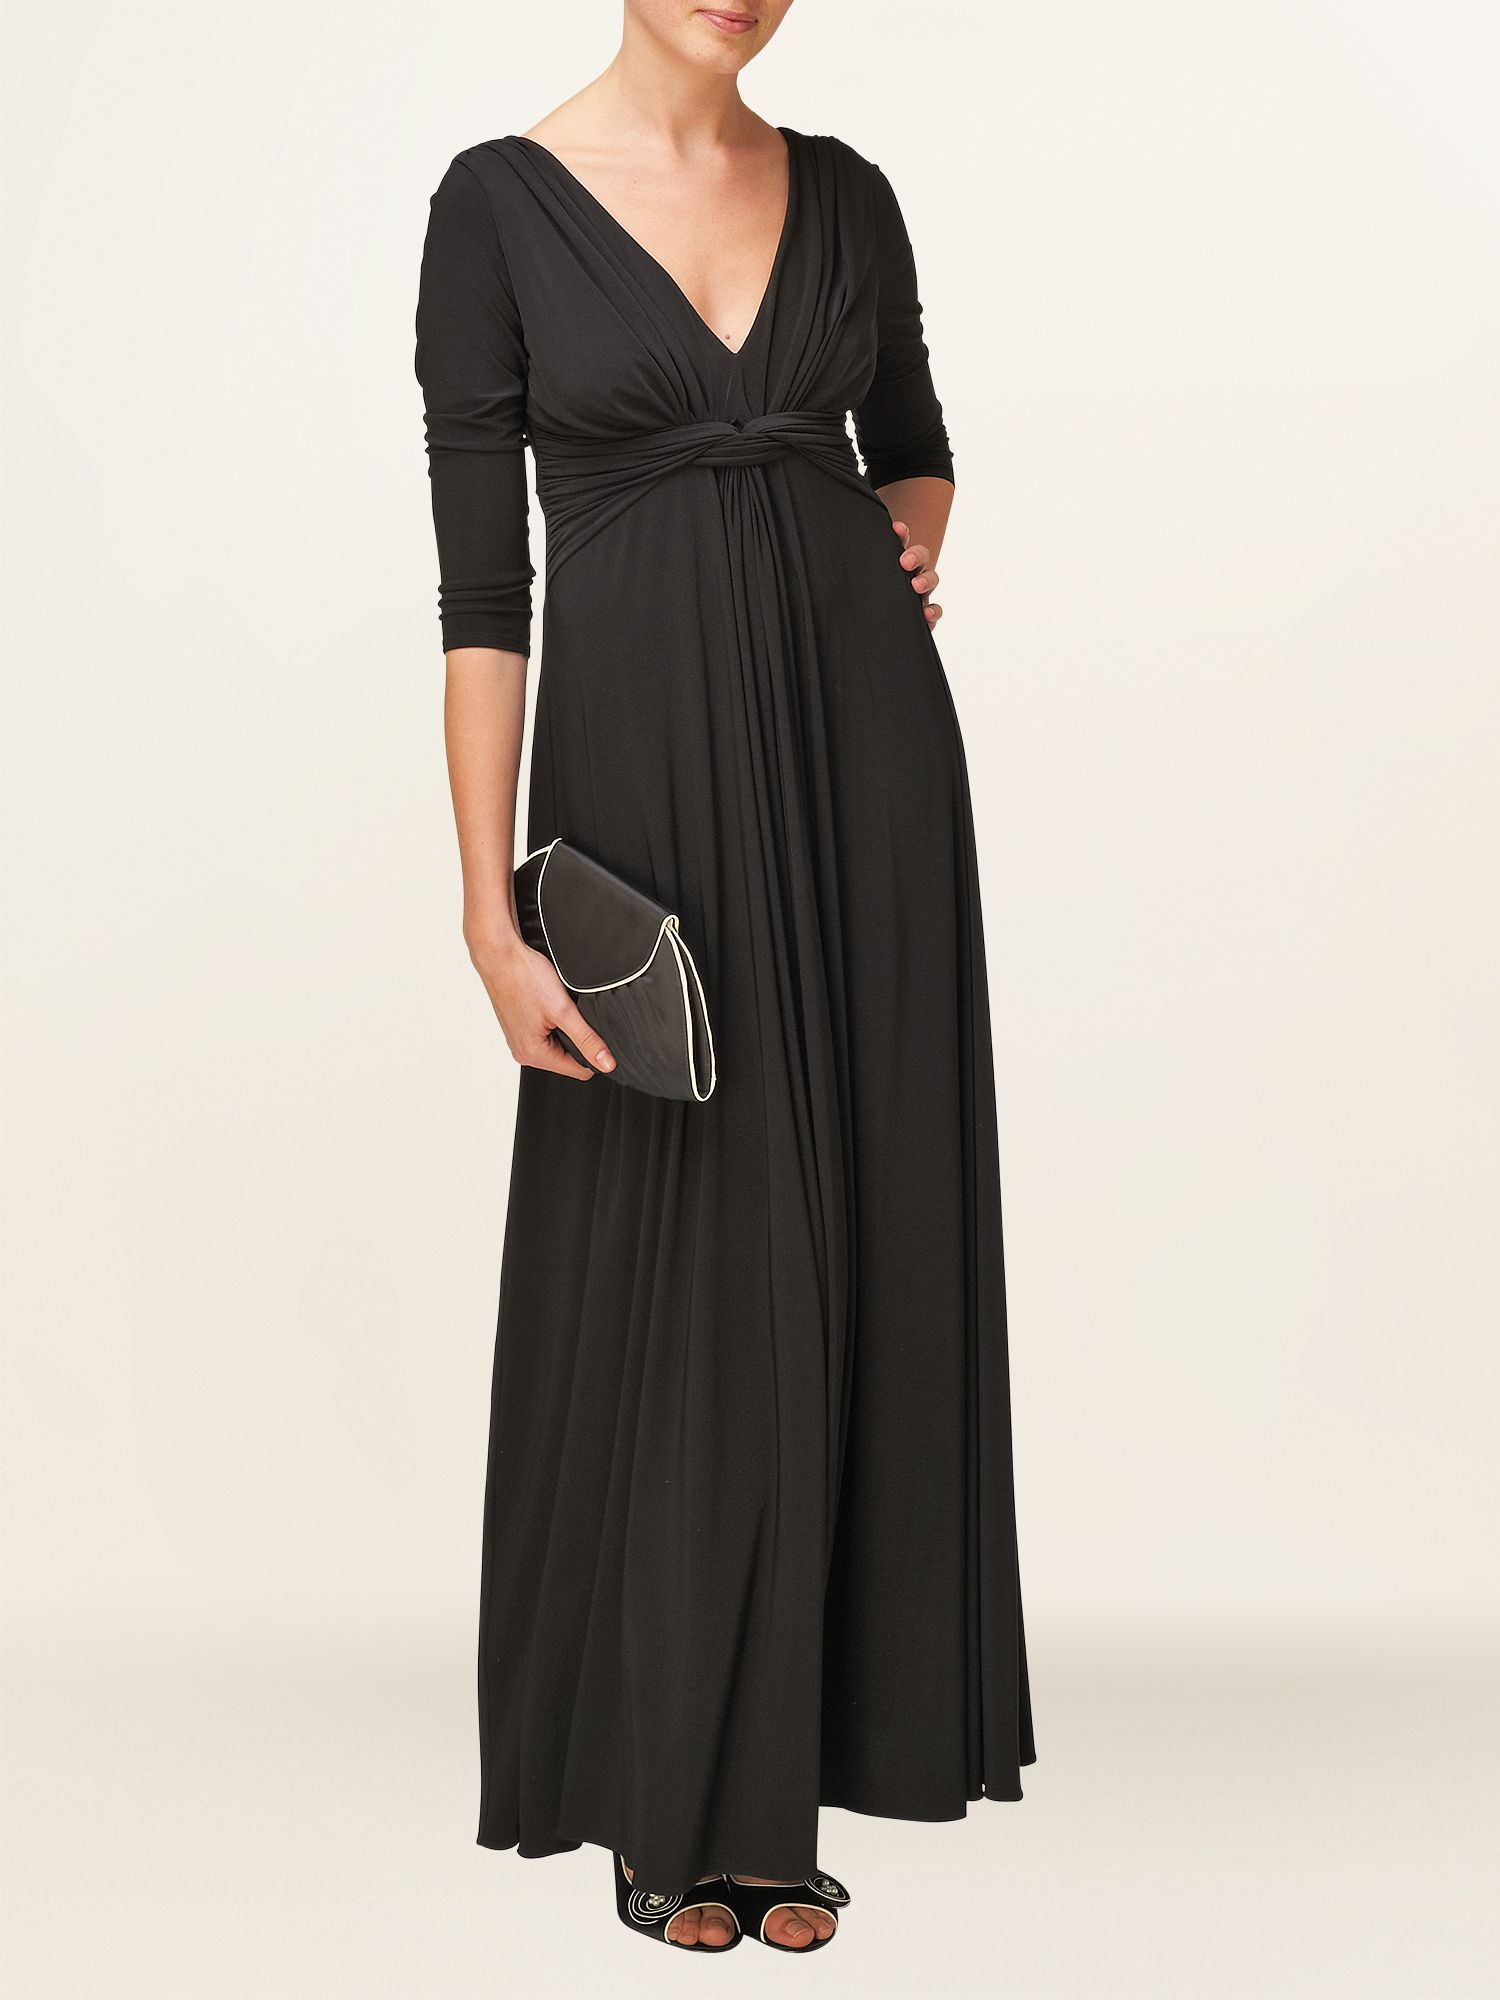 3/4 sleeve arabella maxi dress